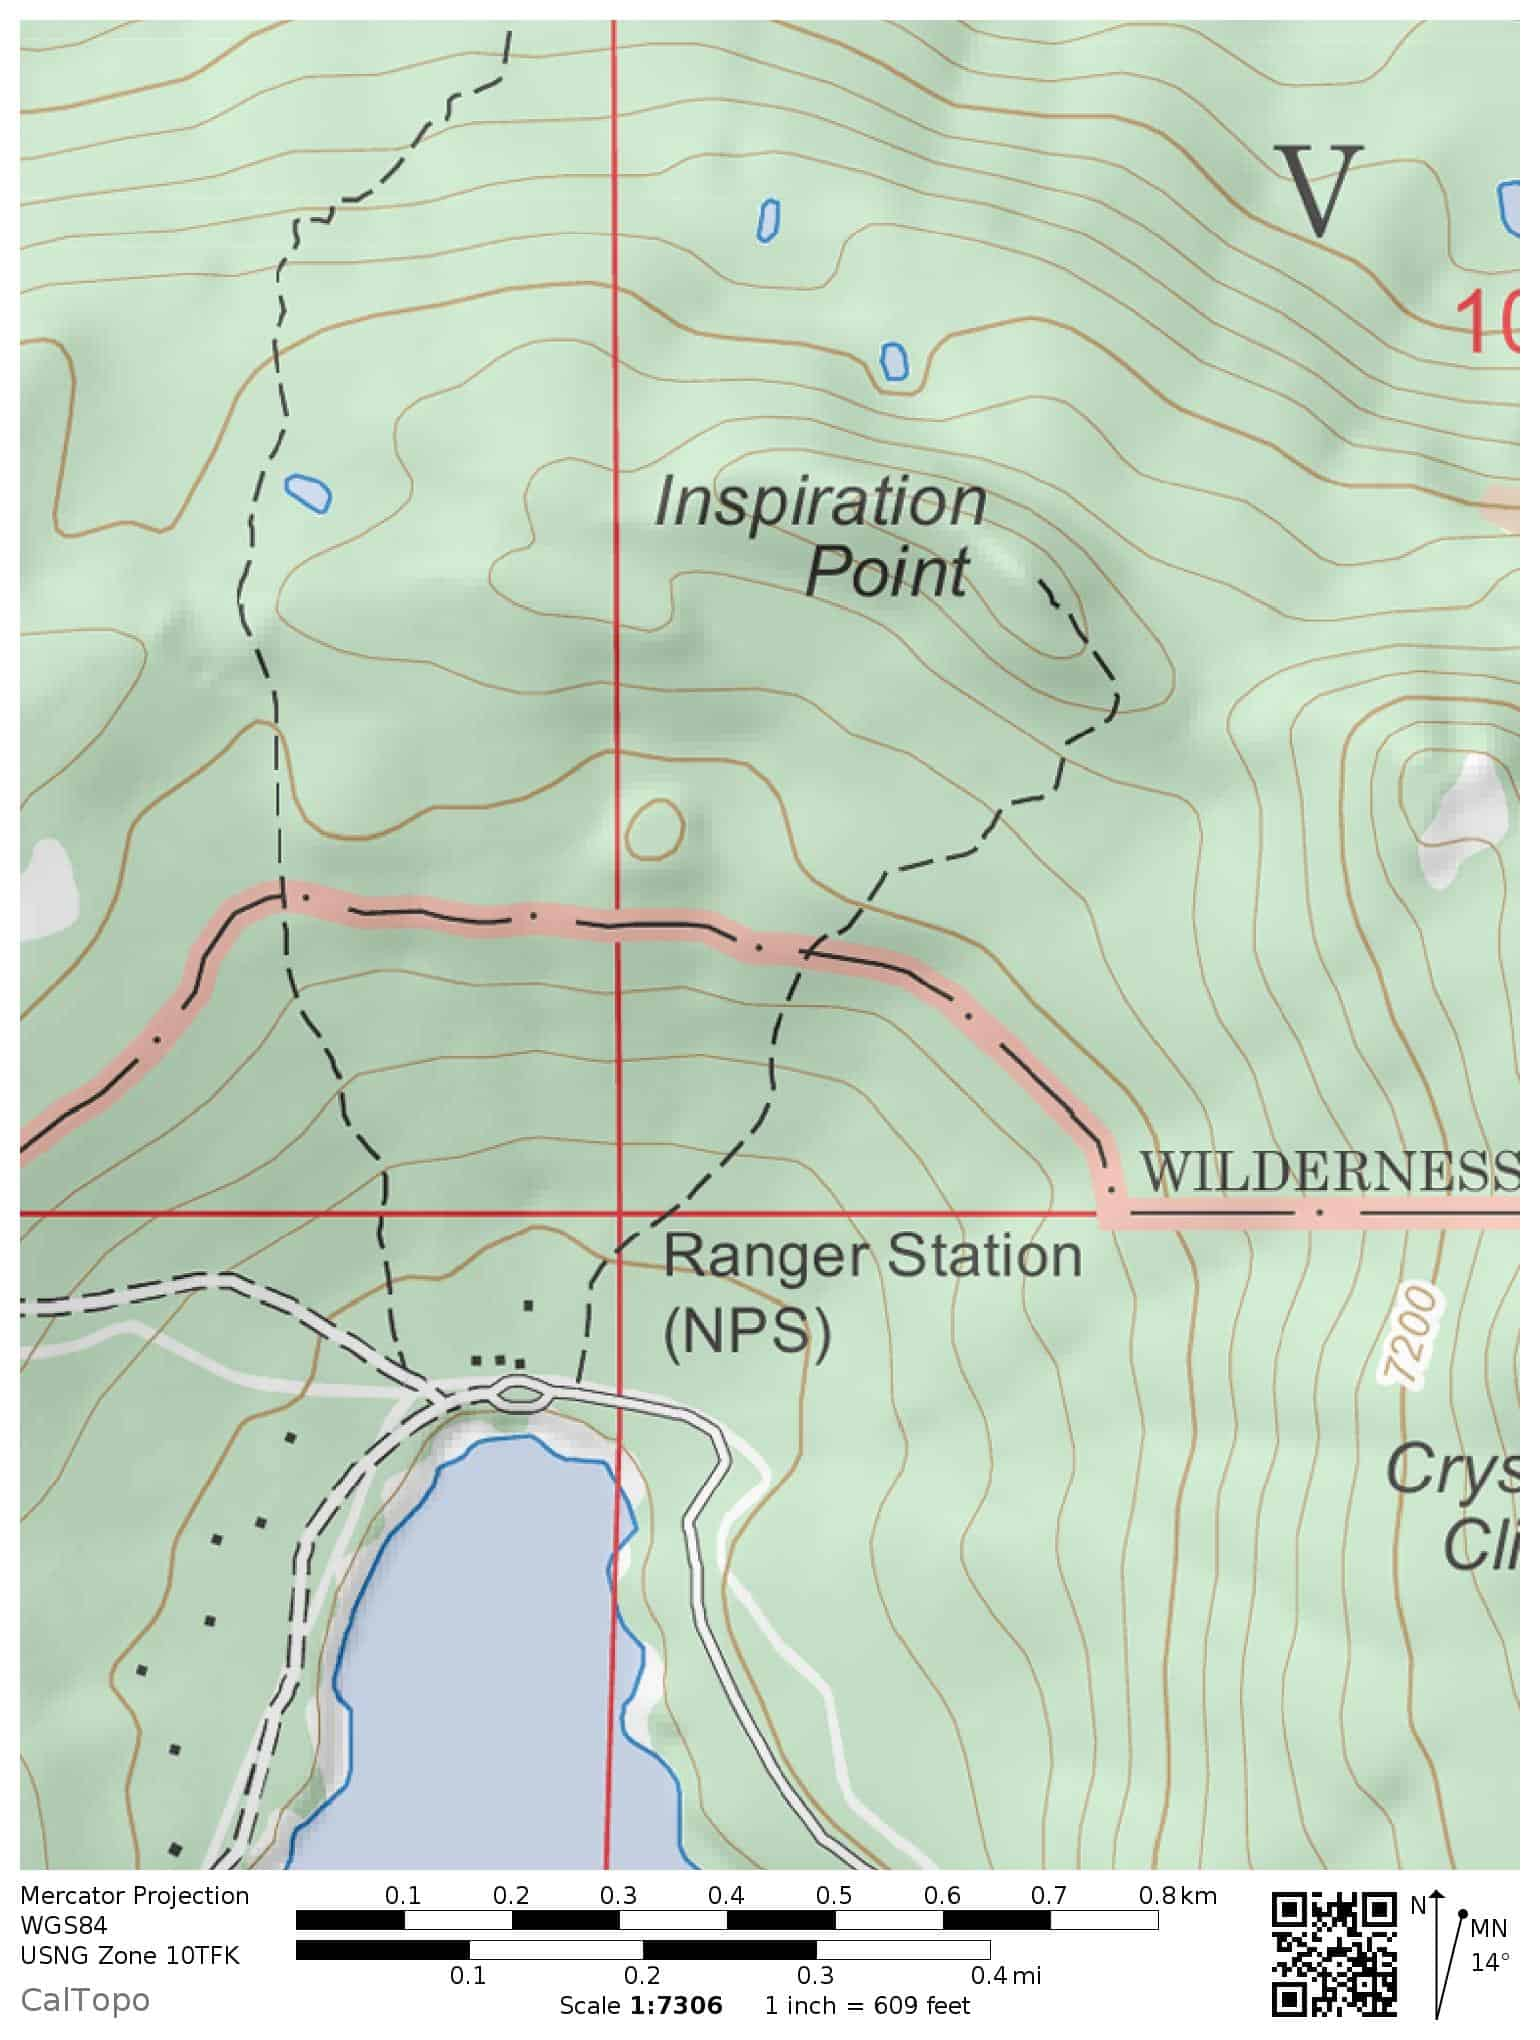 Trail map for hiking to Inspiration Point near Juniper Lake in eastern Lassen Volcanic National Park.